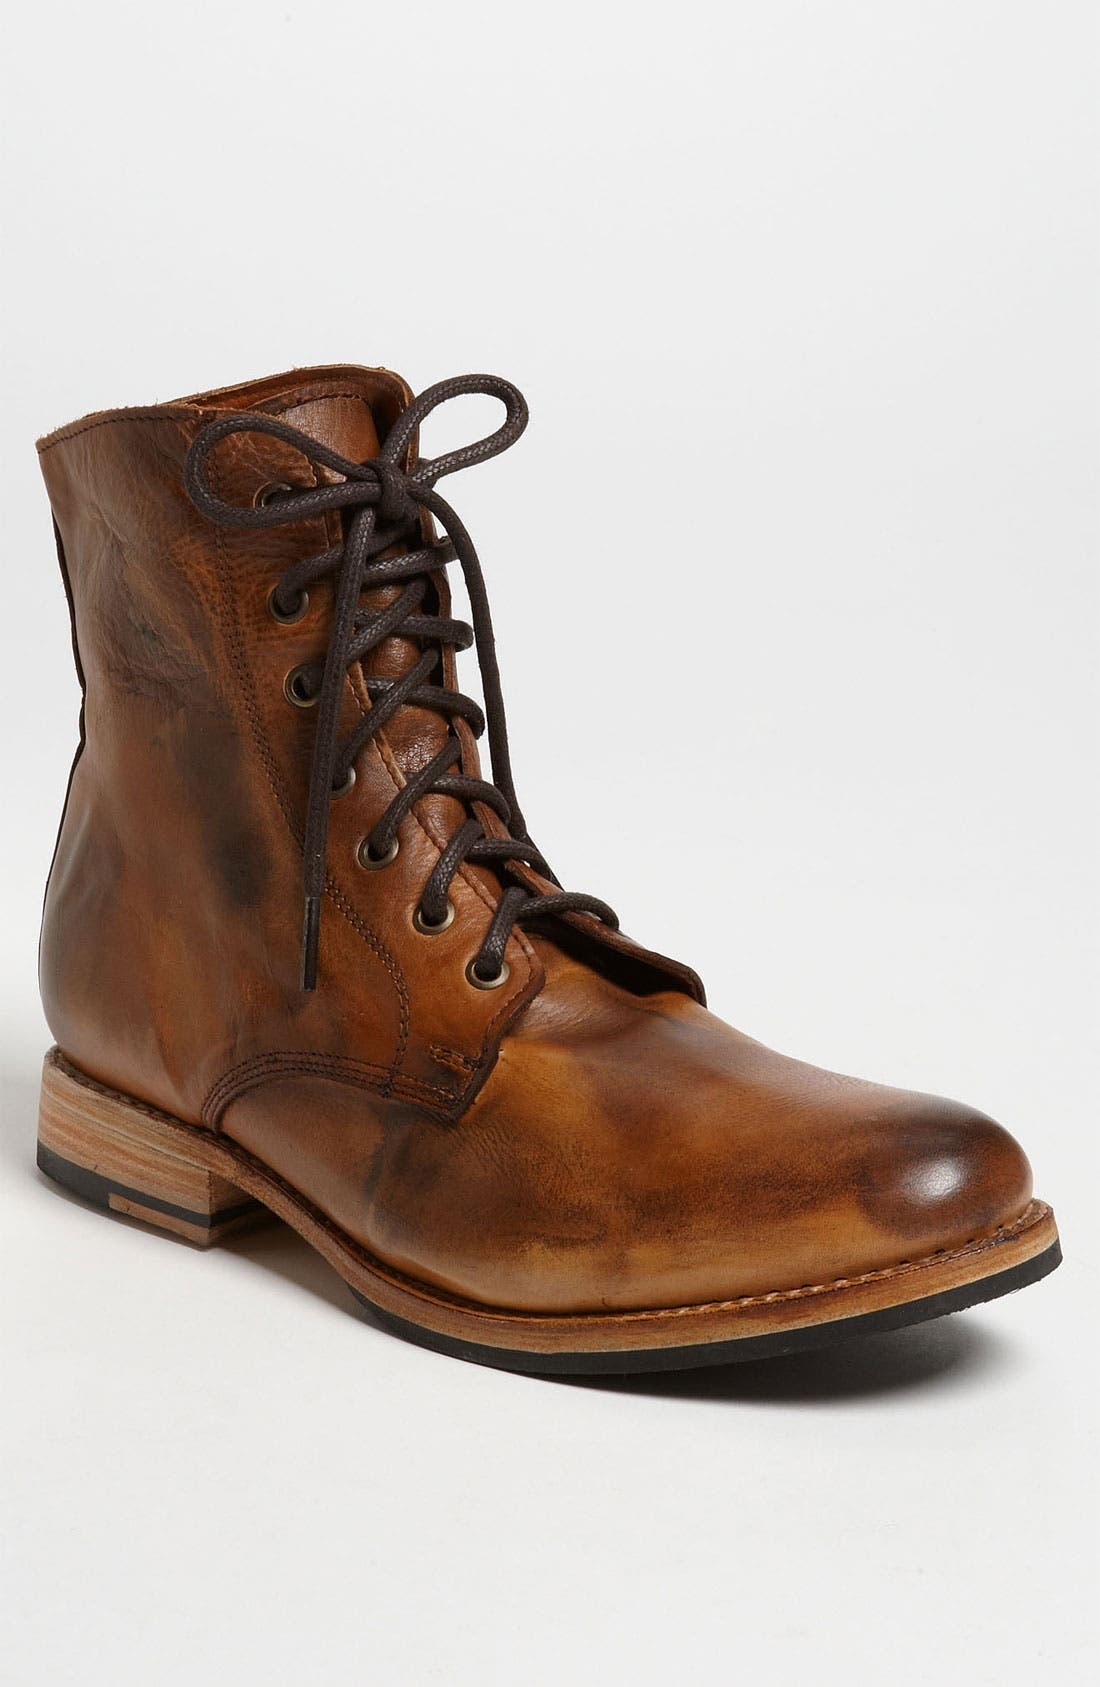 Main Image - Bed Stu 'Post' Plain Toe Boot (Online Only)